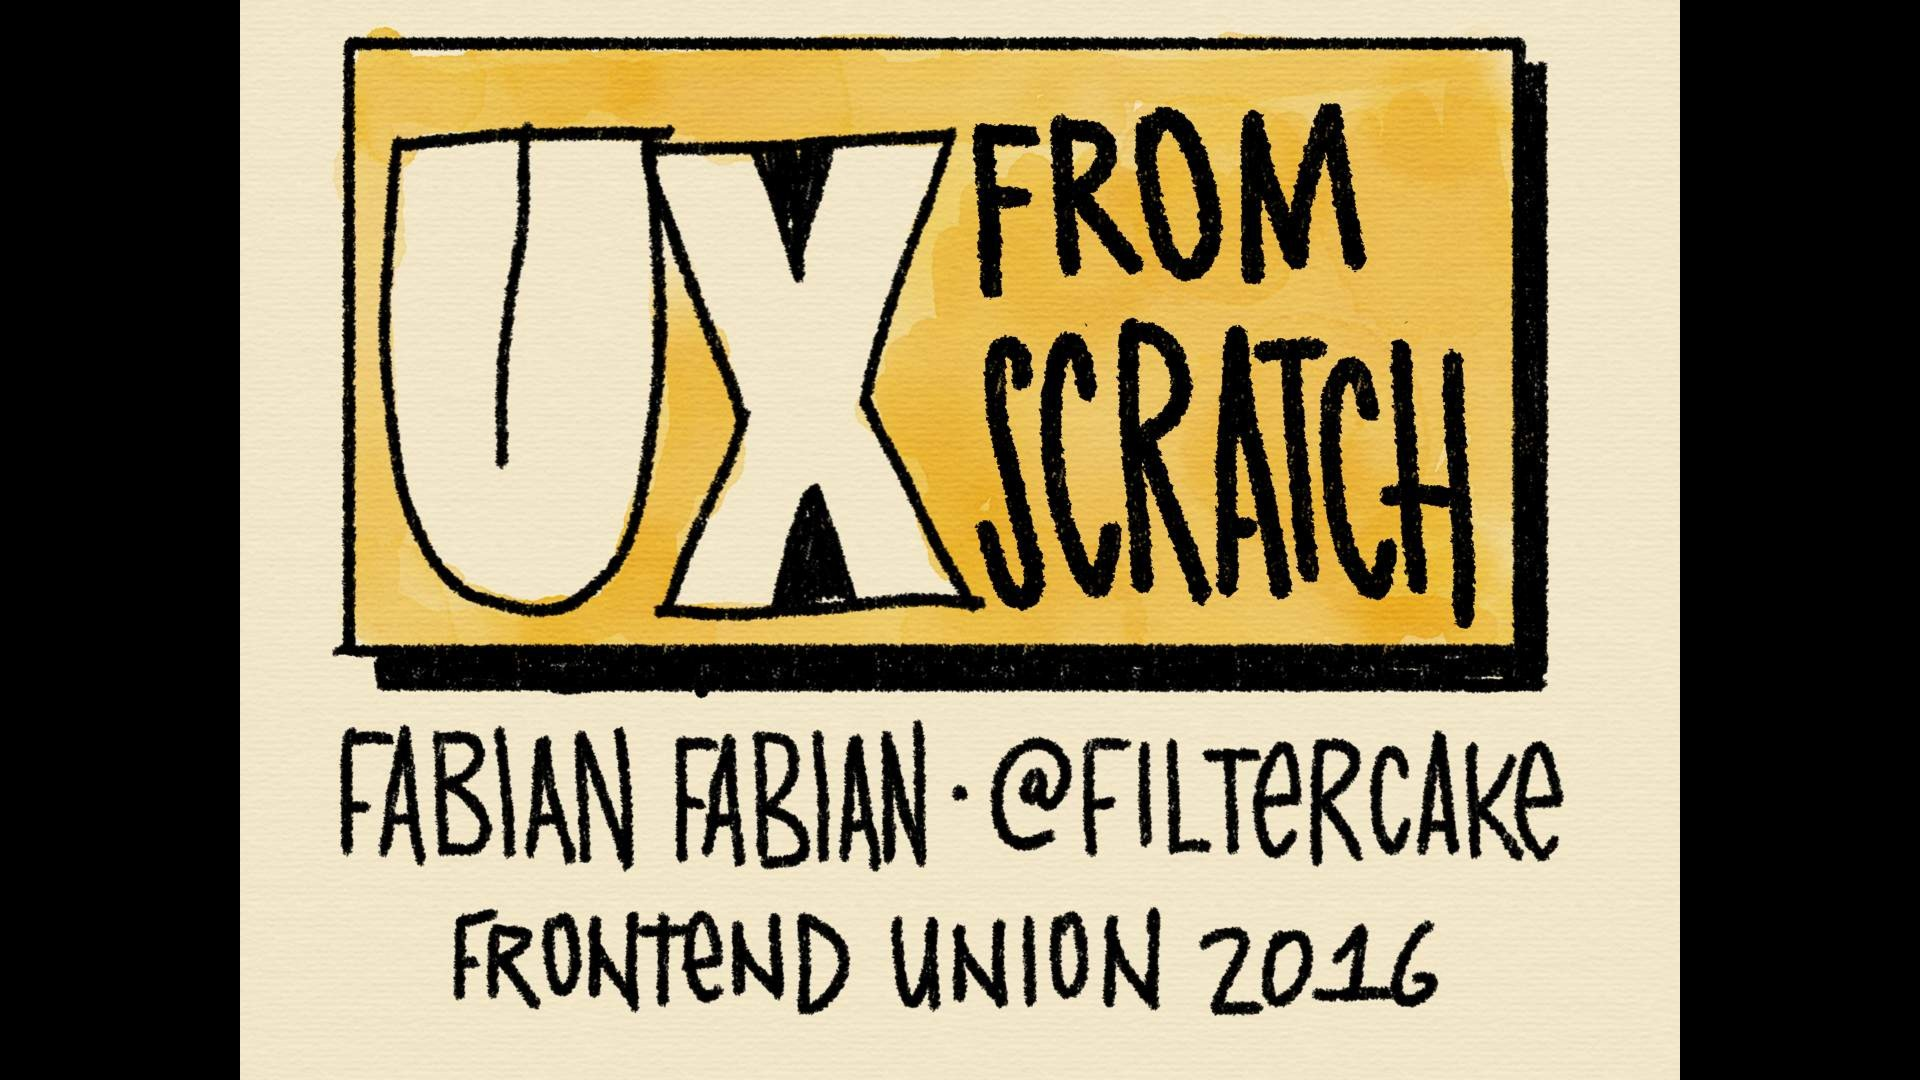 UX FROM SCRATCH @ Frontend Union 2016